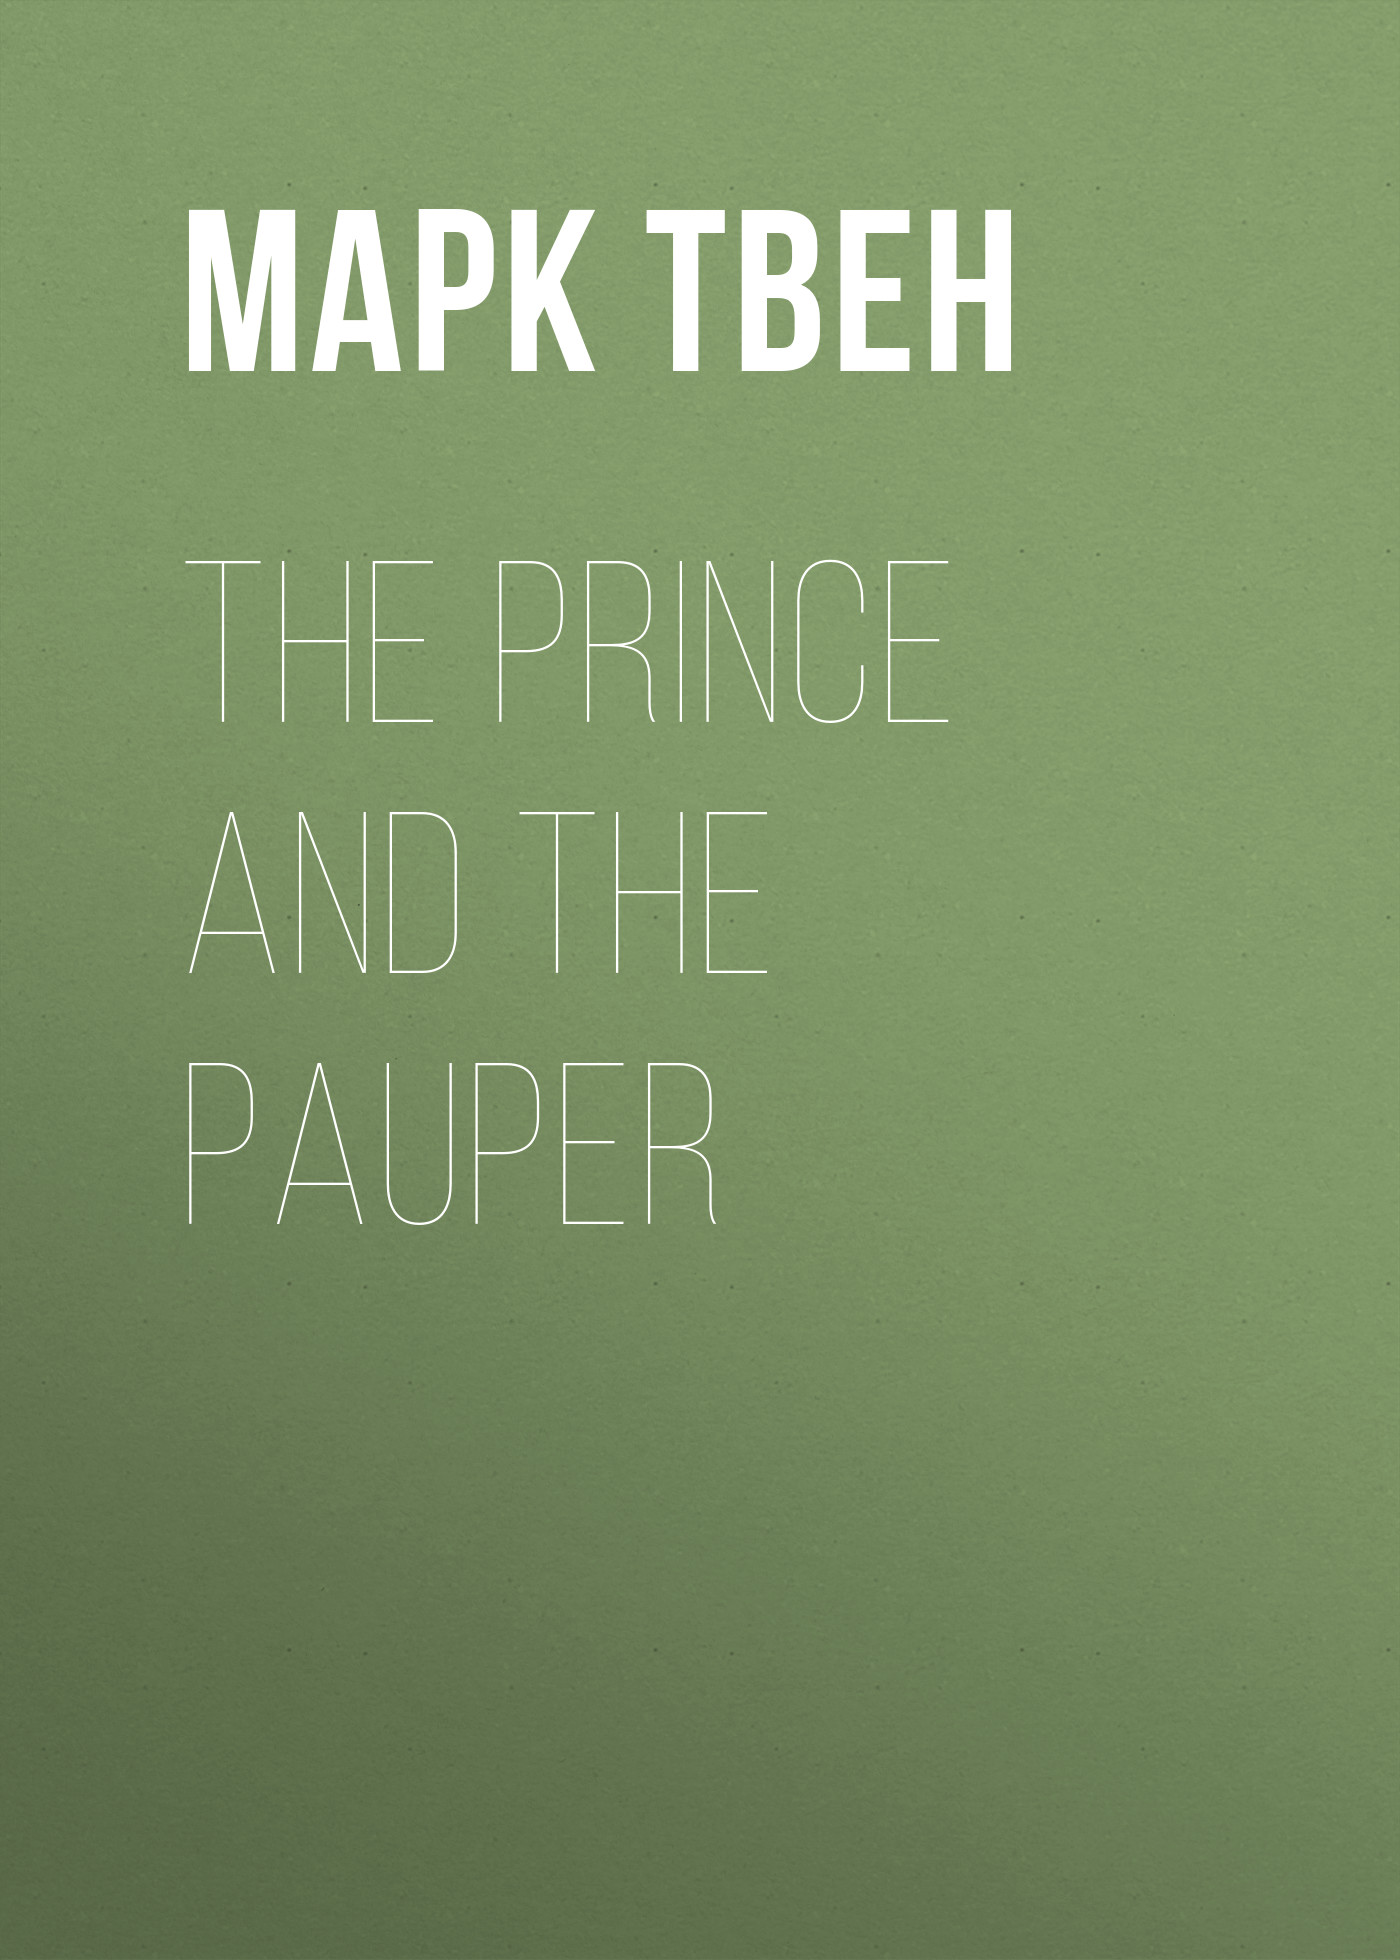 Марк Твен The Prince and the Pauper the prince and the pauper принц и нищий